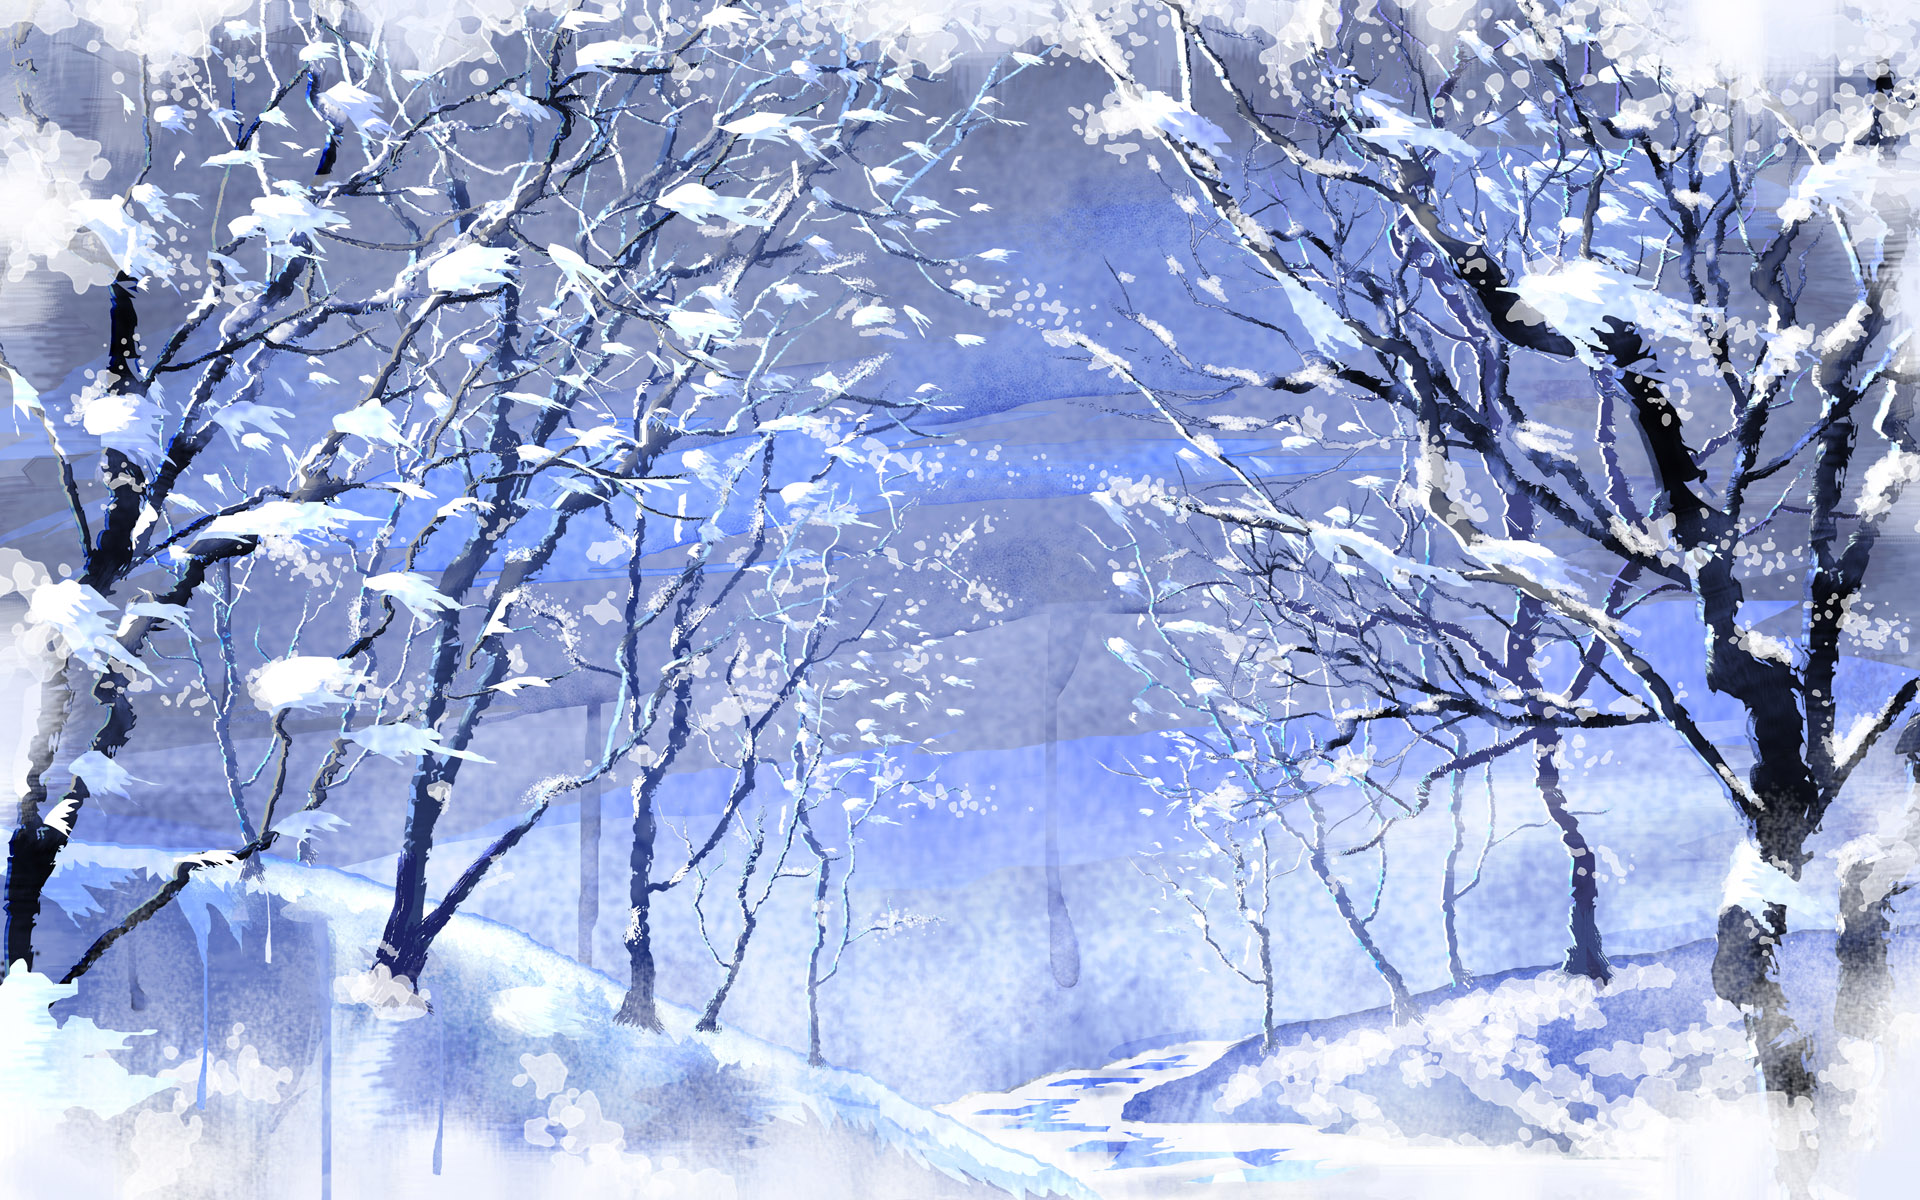 Winter Scene Wallpaper Winter Scene Wallpaper Christmas Scenery 1920x1200